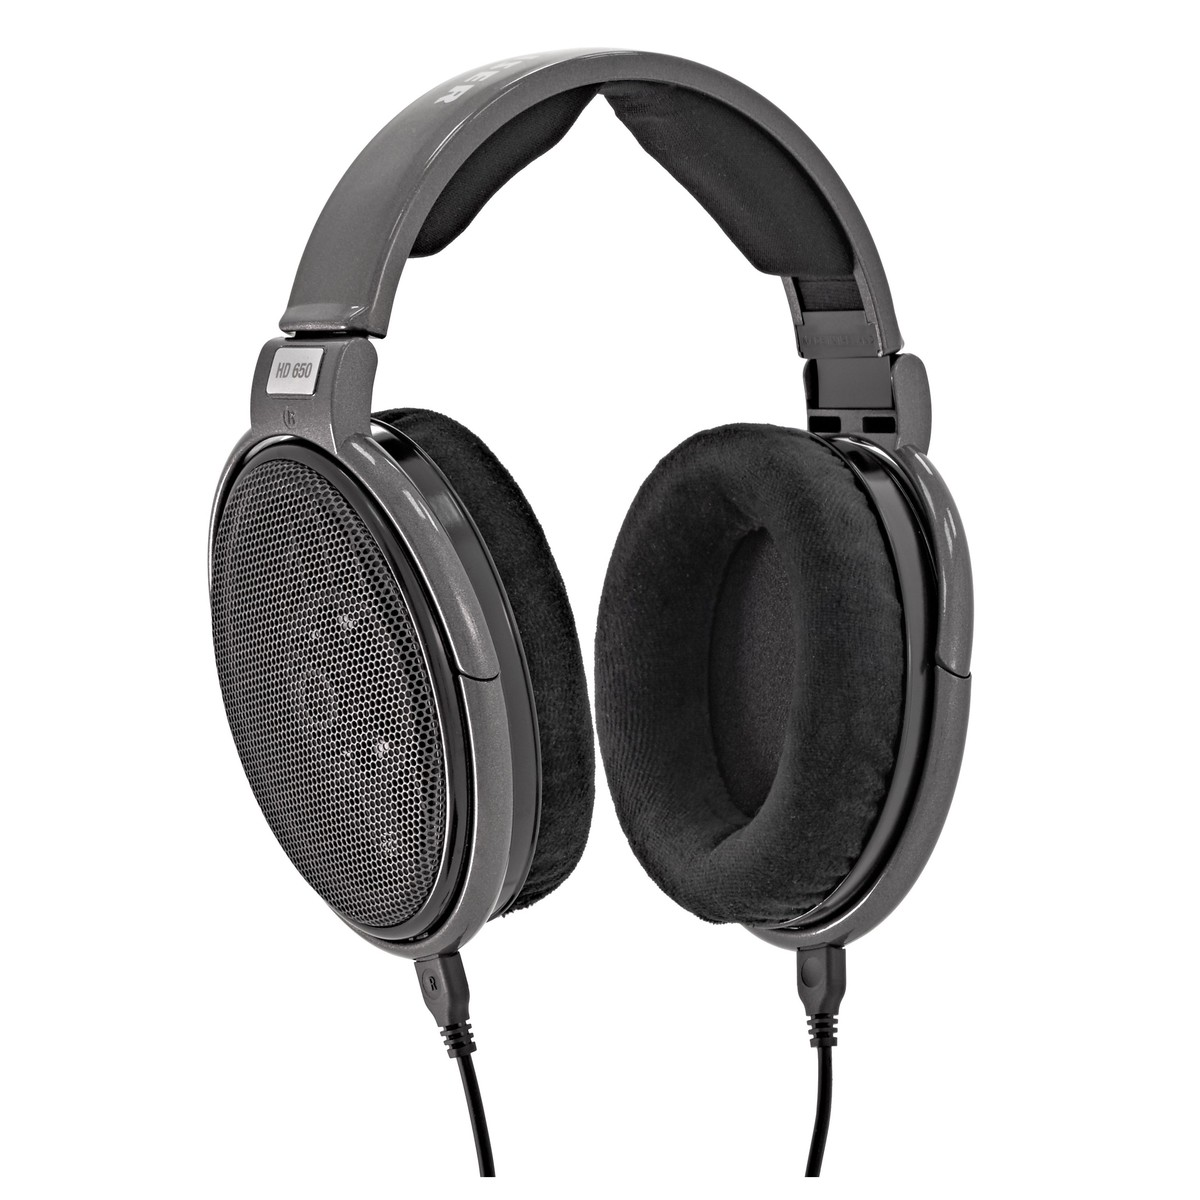 sennheiser hd 650 audiophile open dynamic headphones at gear4music. Black Bedroom Furniture Sets. Home Design Ideas